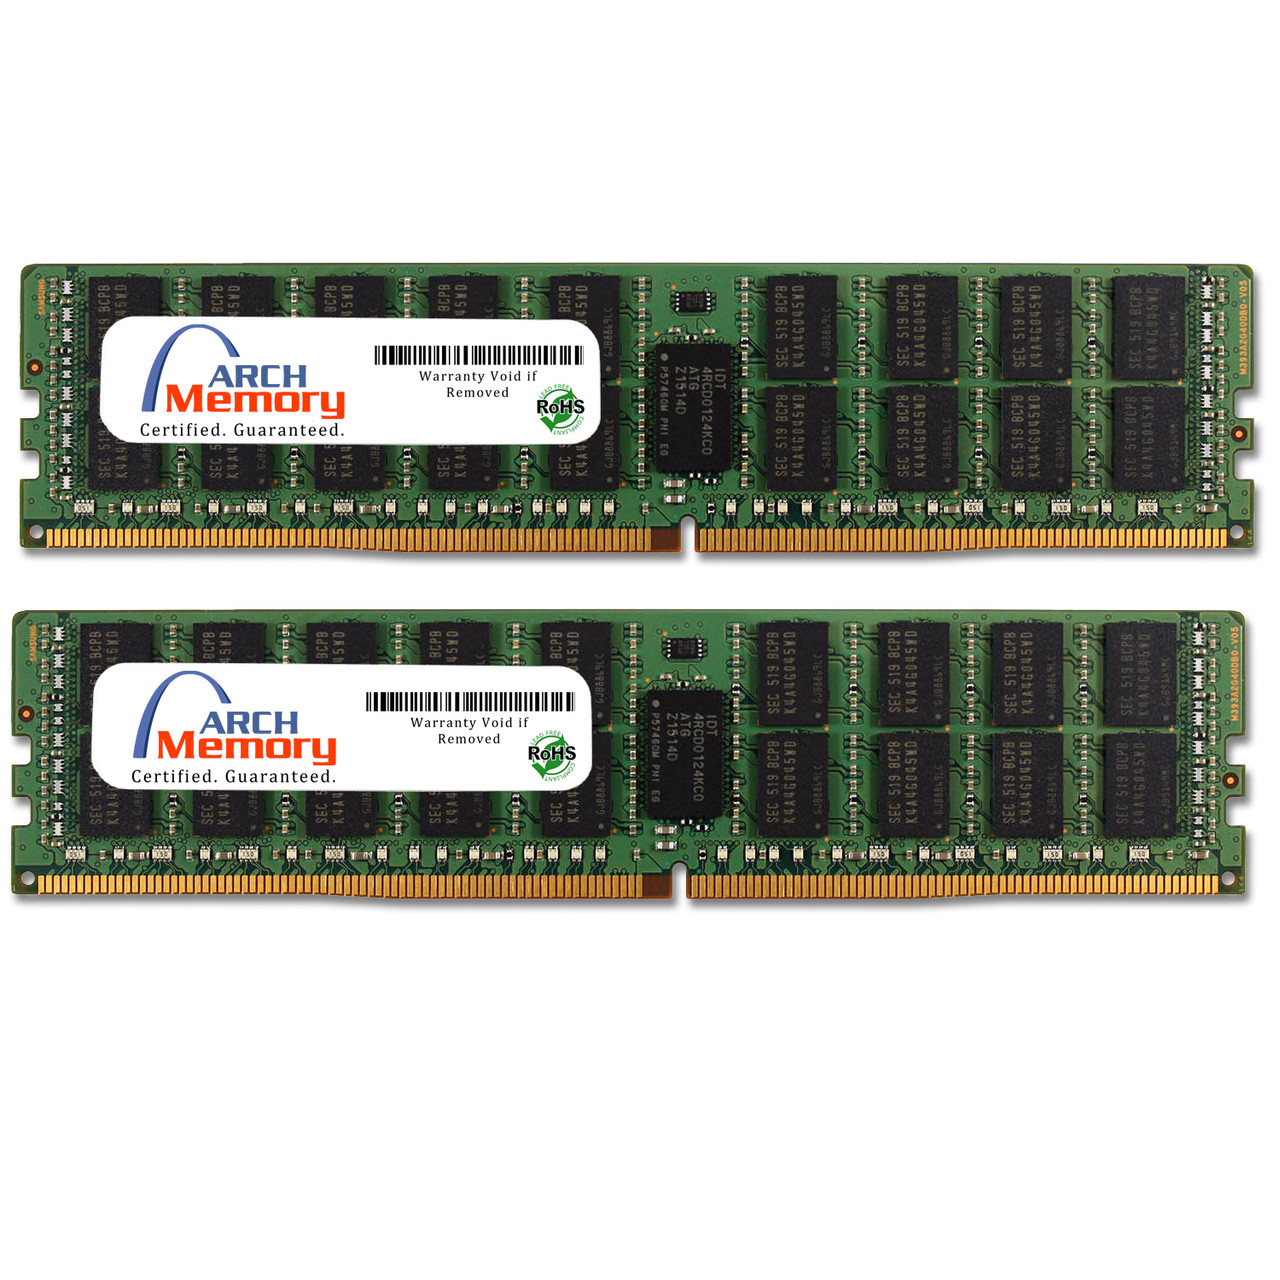 64GB (2 x 32GB) DDR4-2133 PC4-17000 288-Pin ECC Registered Load Reducing 4Rx4 RAM